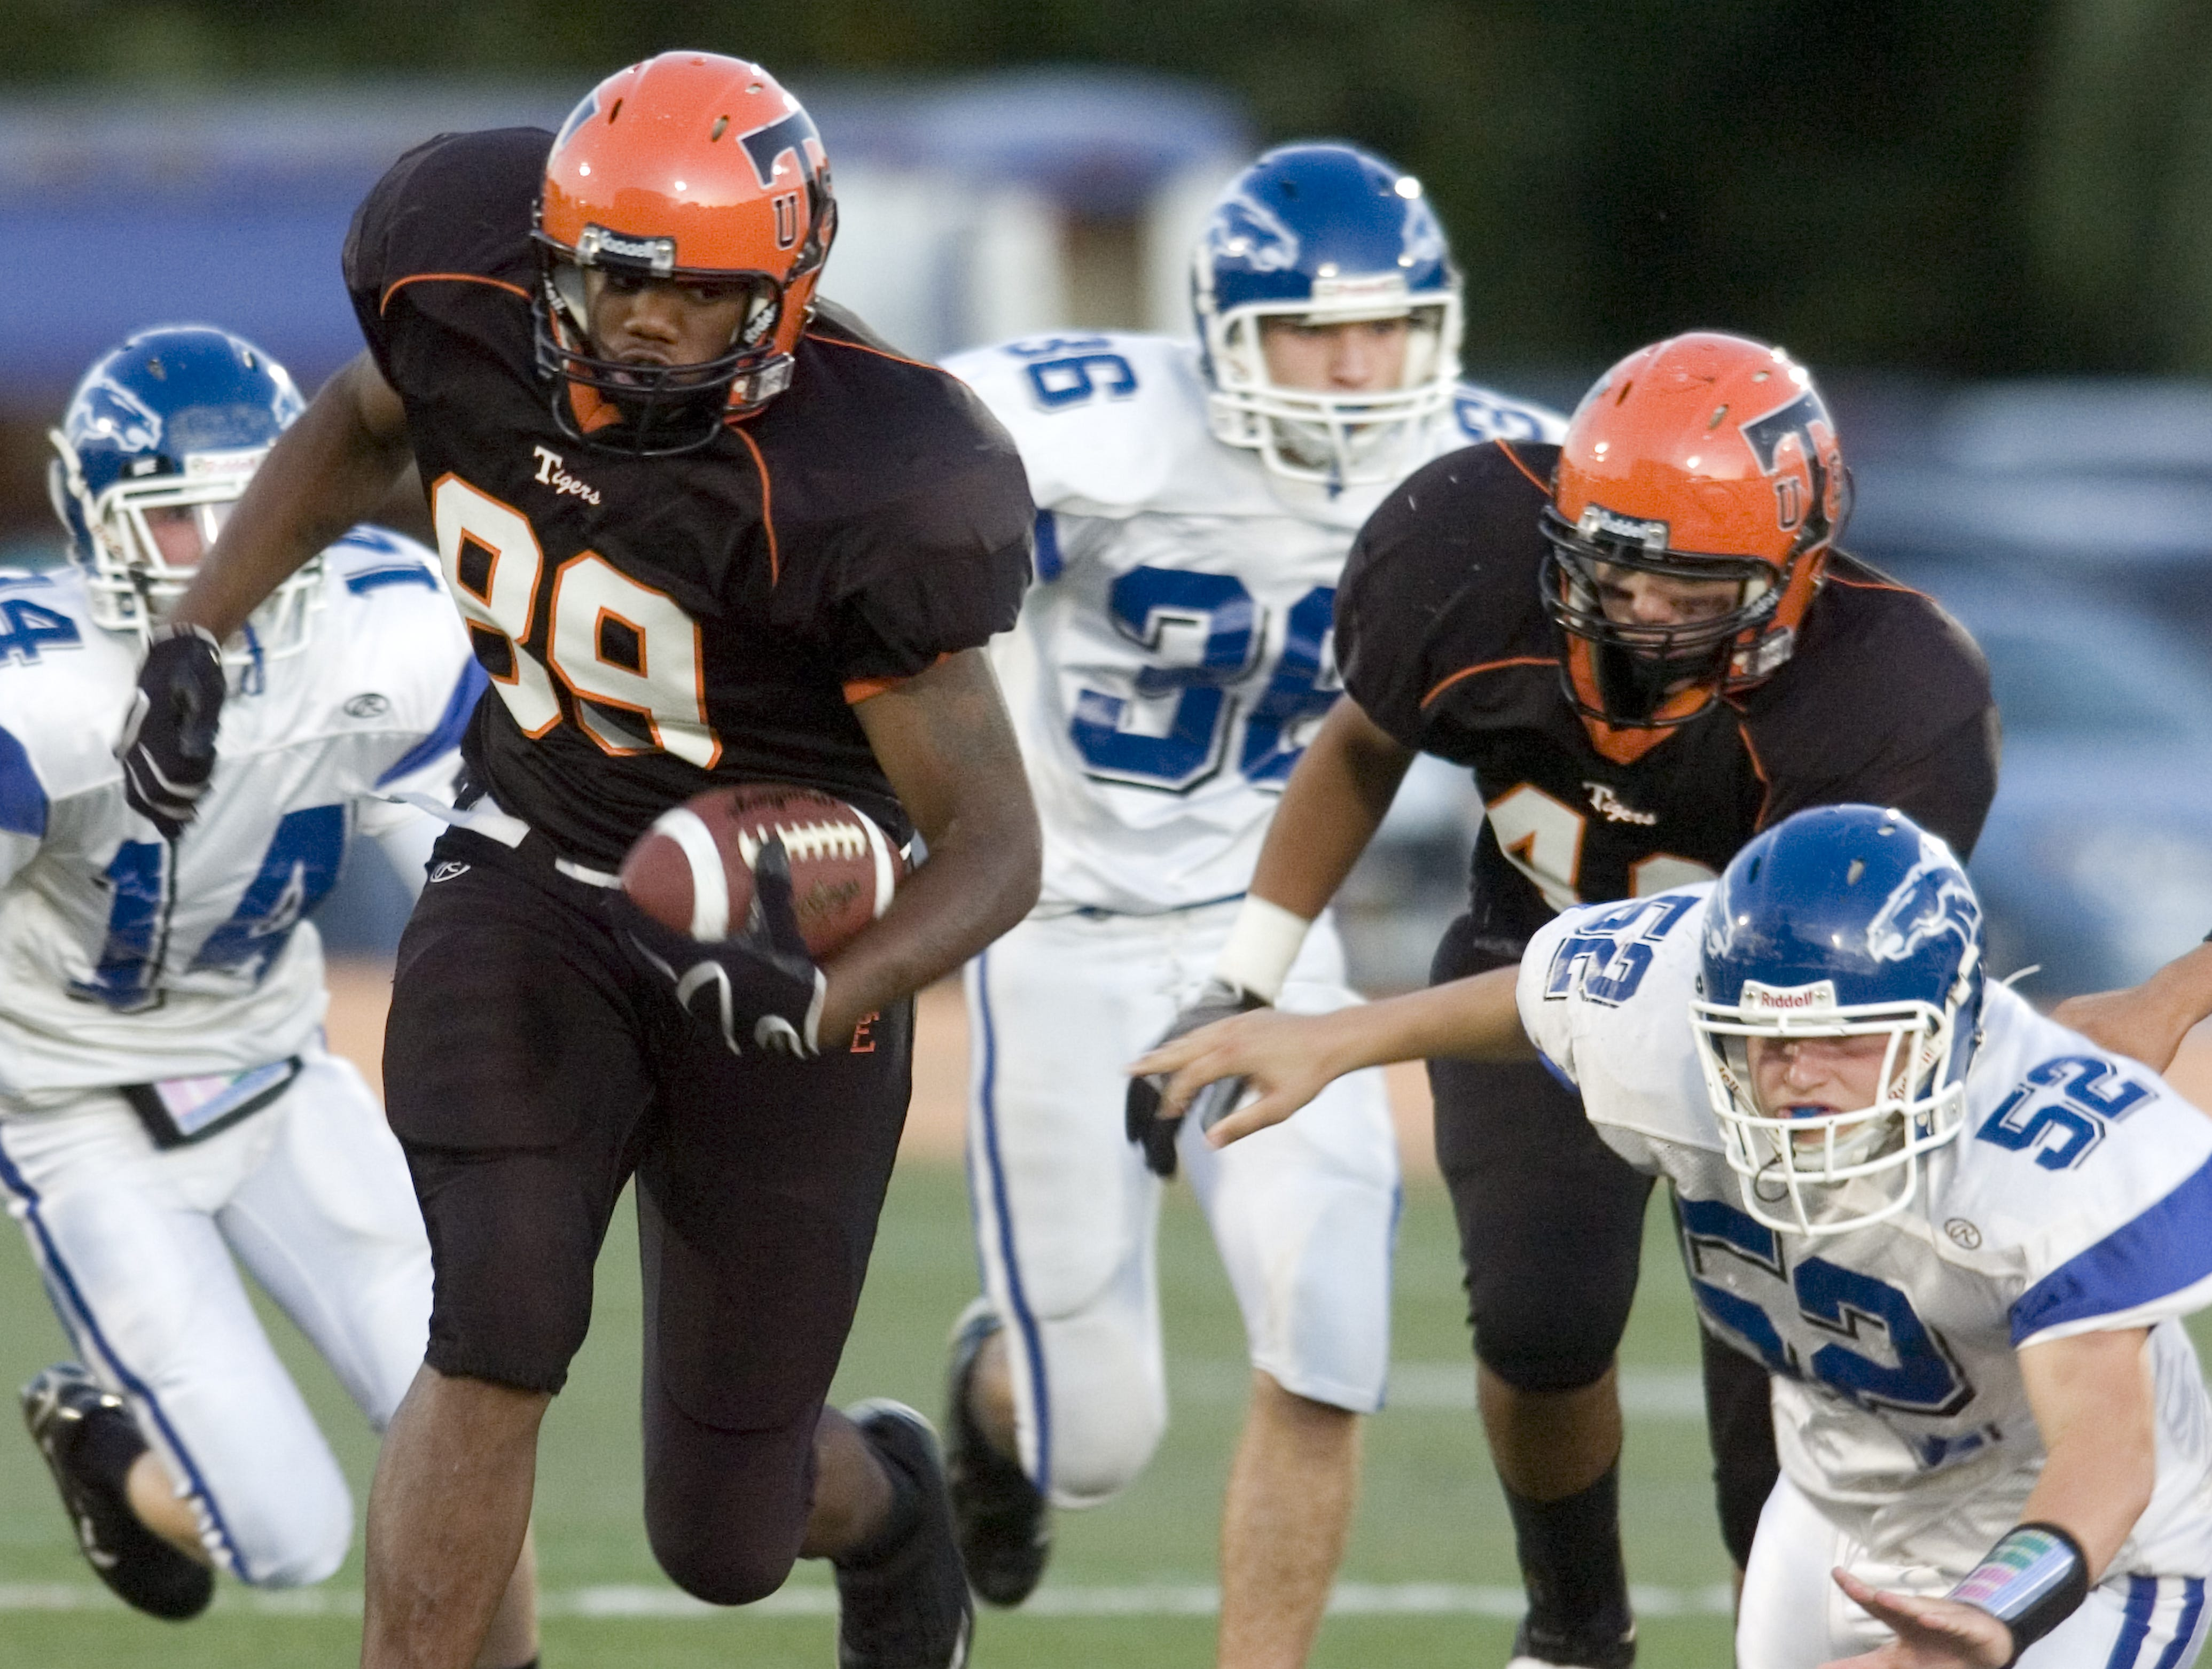 Union-Endicott's Carnell Chandler, left, runs away with the football as Horseheads' Patrick Watson falls on the opening kickoff return of a 2009 game at Ty Cobb Stadium.